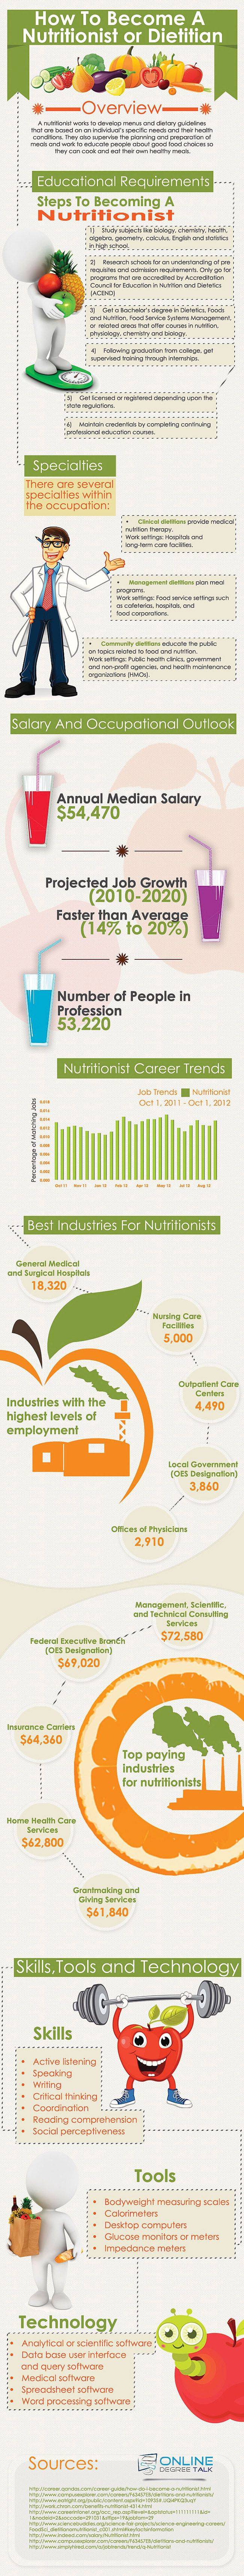 How to Become a Nutritionist or Dietitian